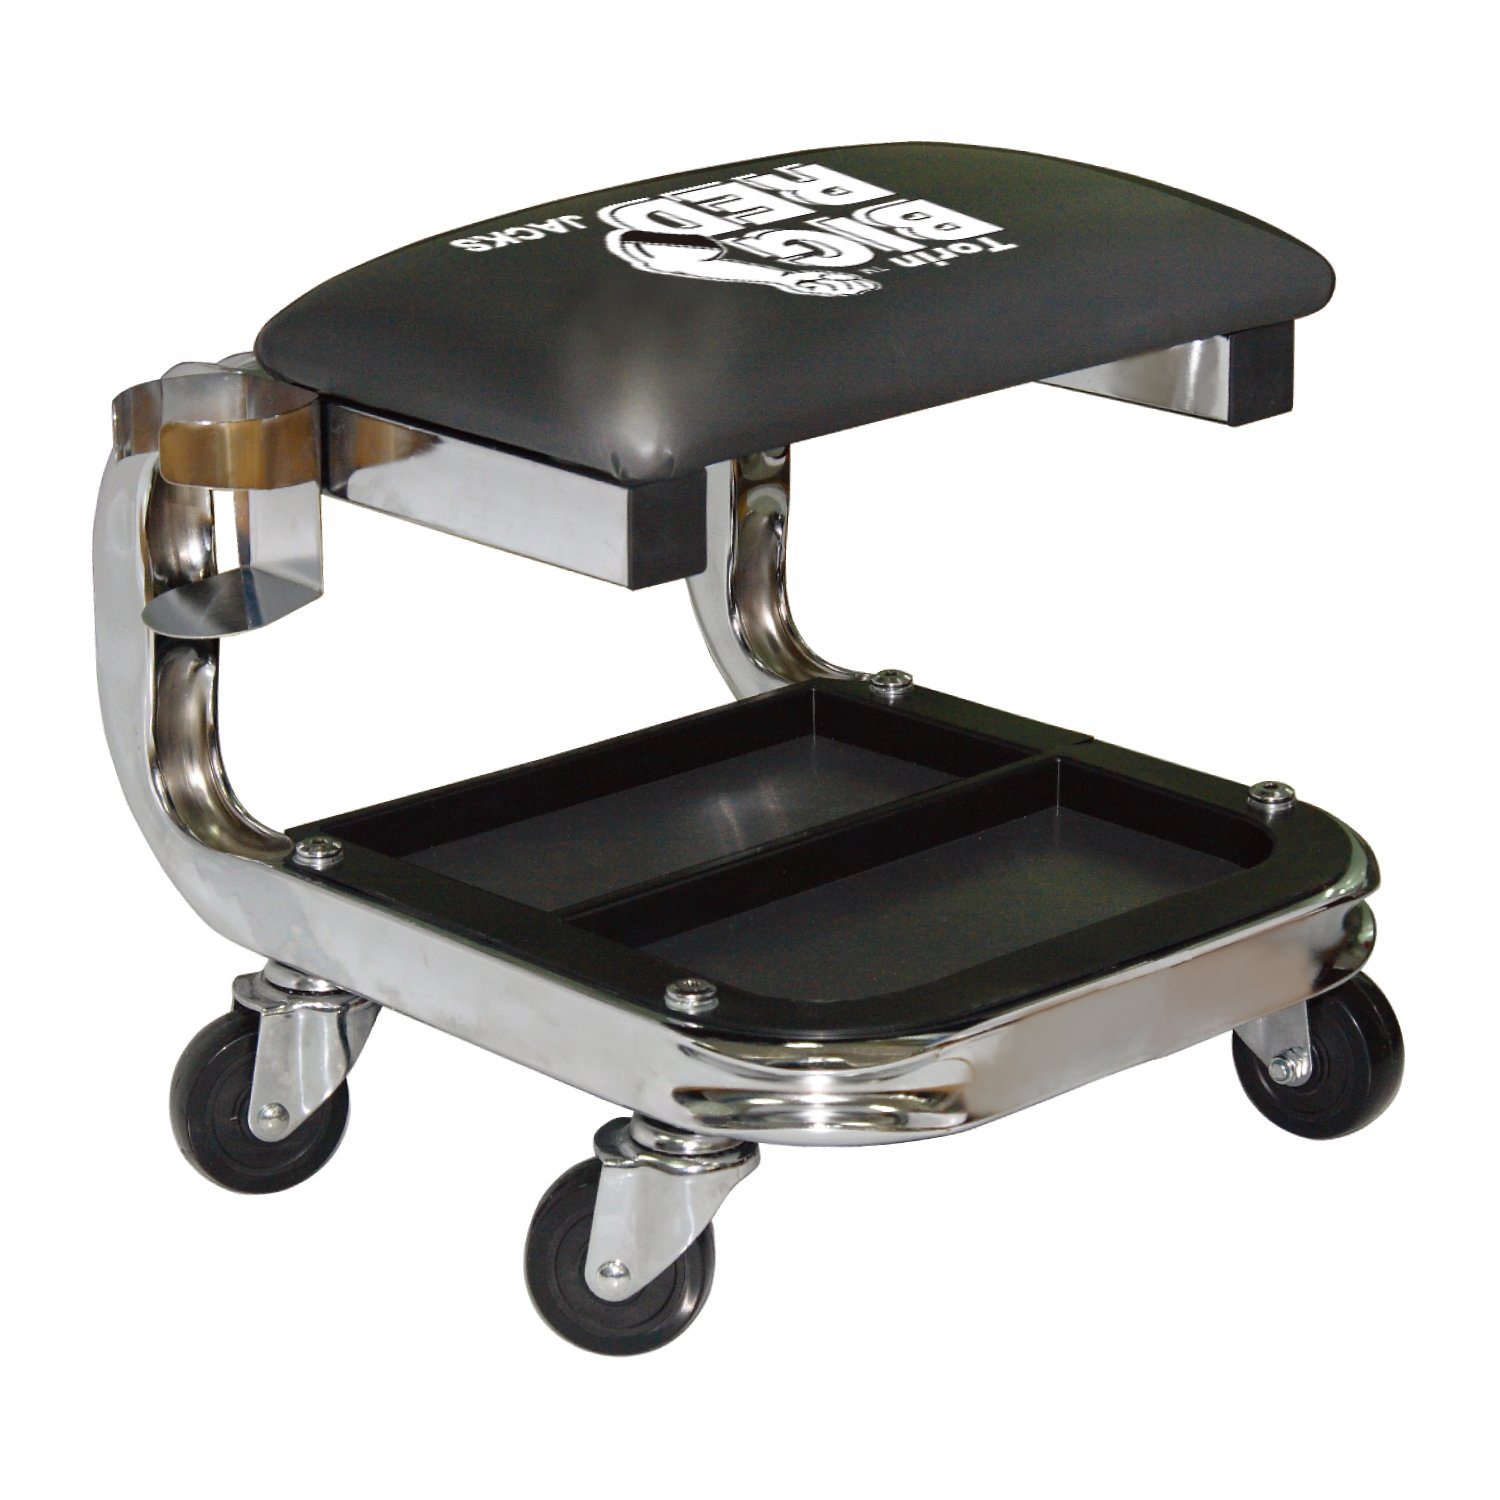 Torin TR6340 Creeper H.D. Shop Seat W.Cup Holder by Torin